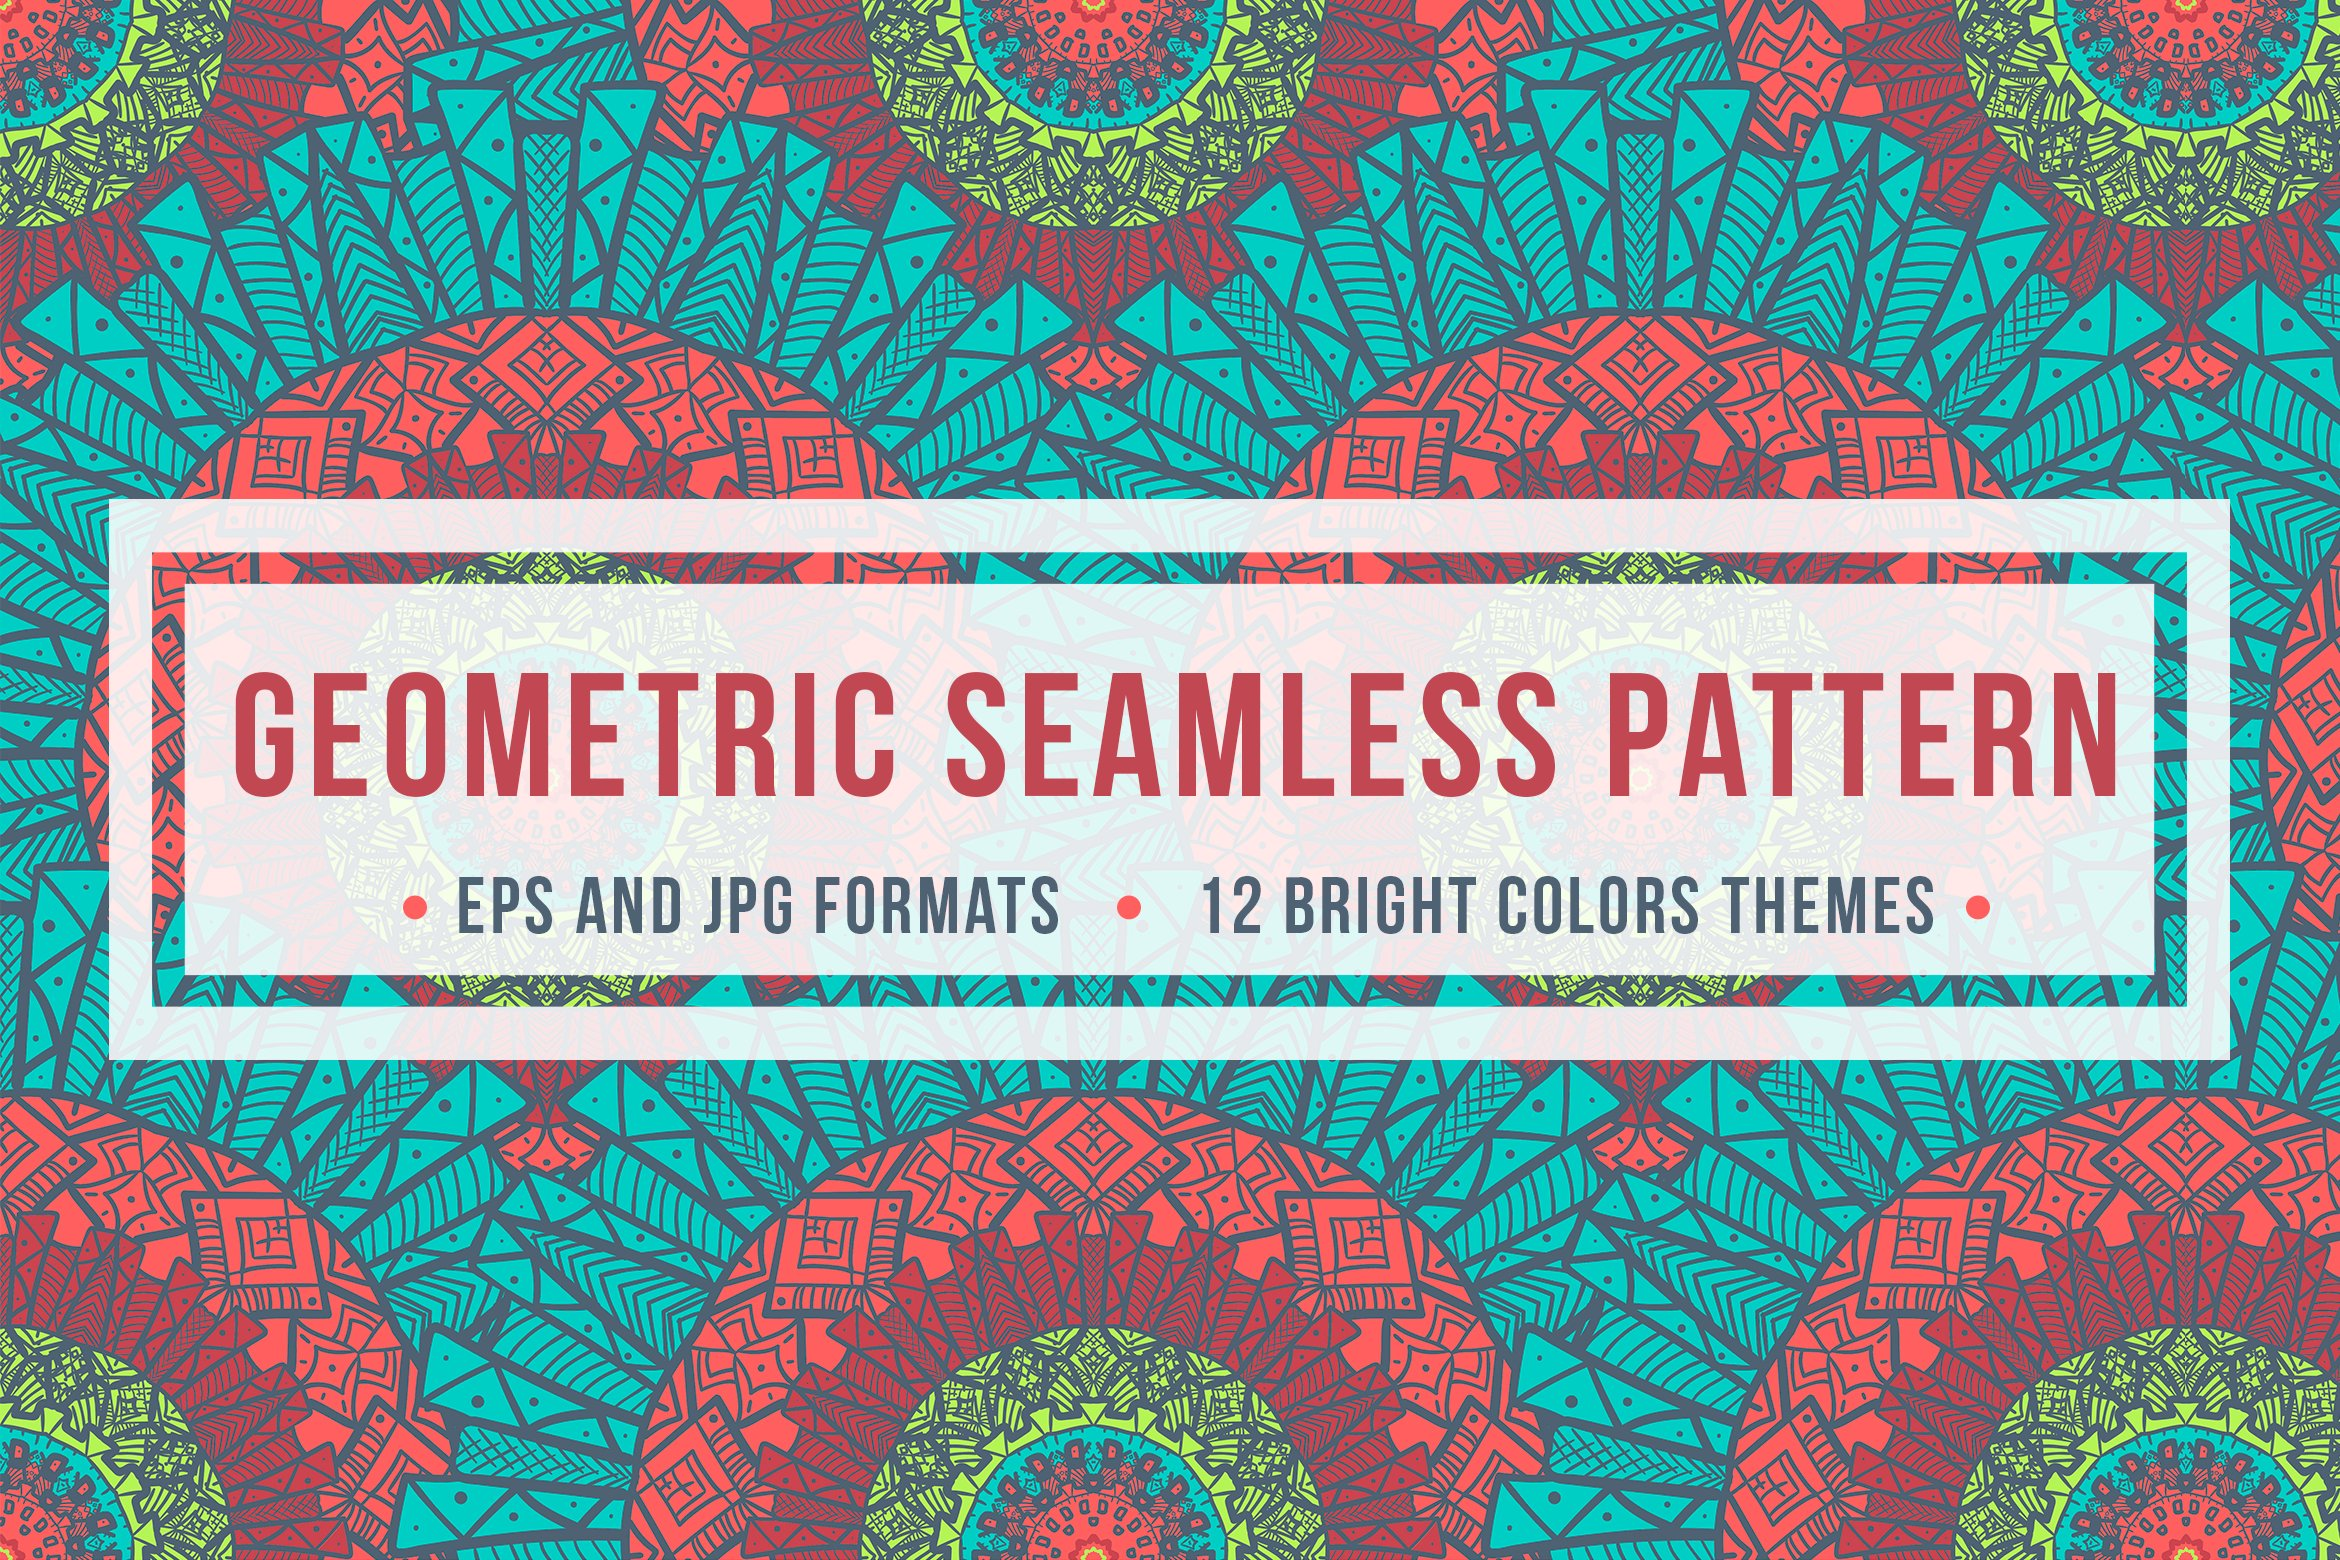 Download Free Geometric Seamless Pattern Graphic By Barsrsind Creative Fabrica for Cricut Explore, Silhouette and other cutting machines.